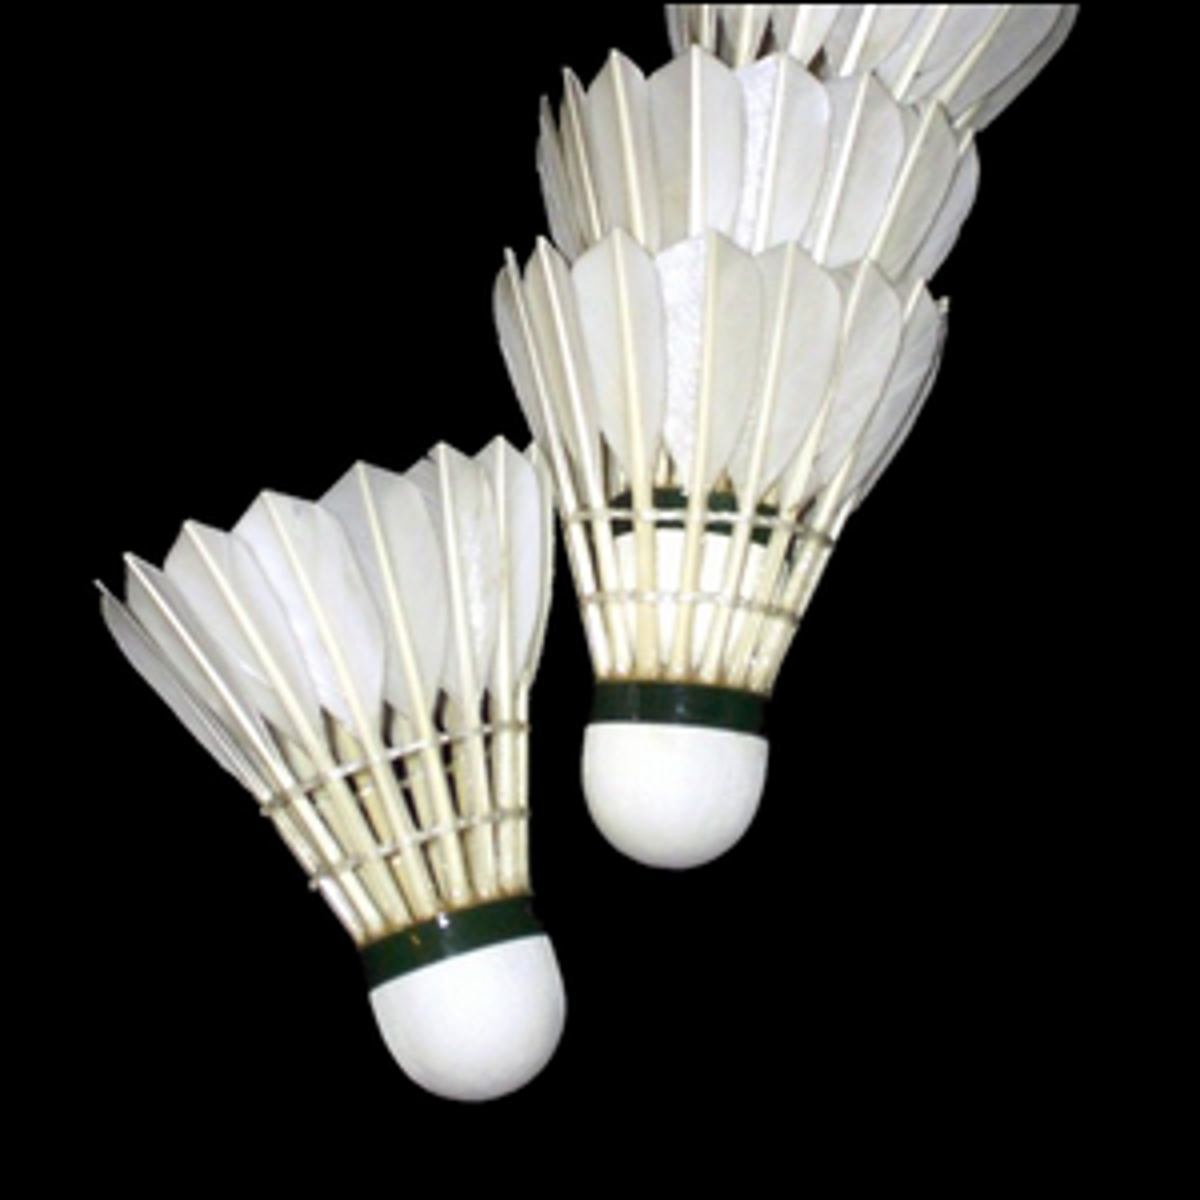 Multiple badminton shuttlecocks with feathers.